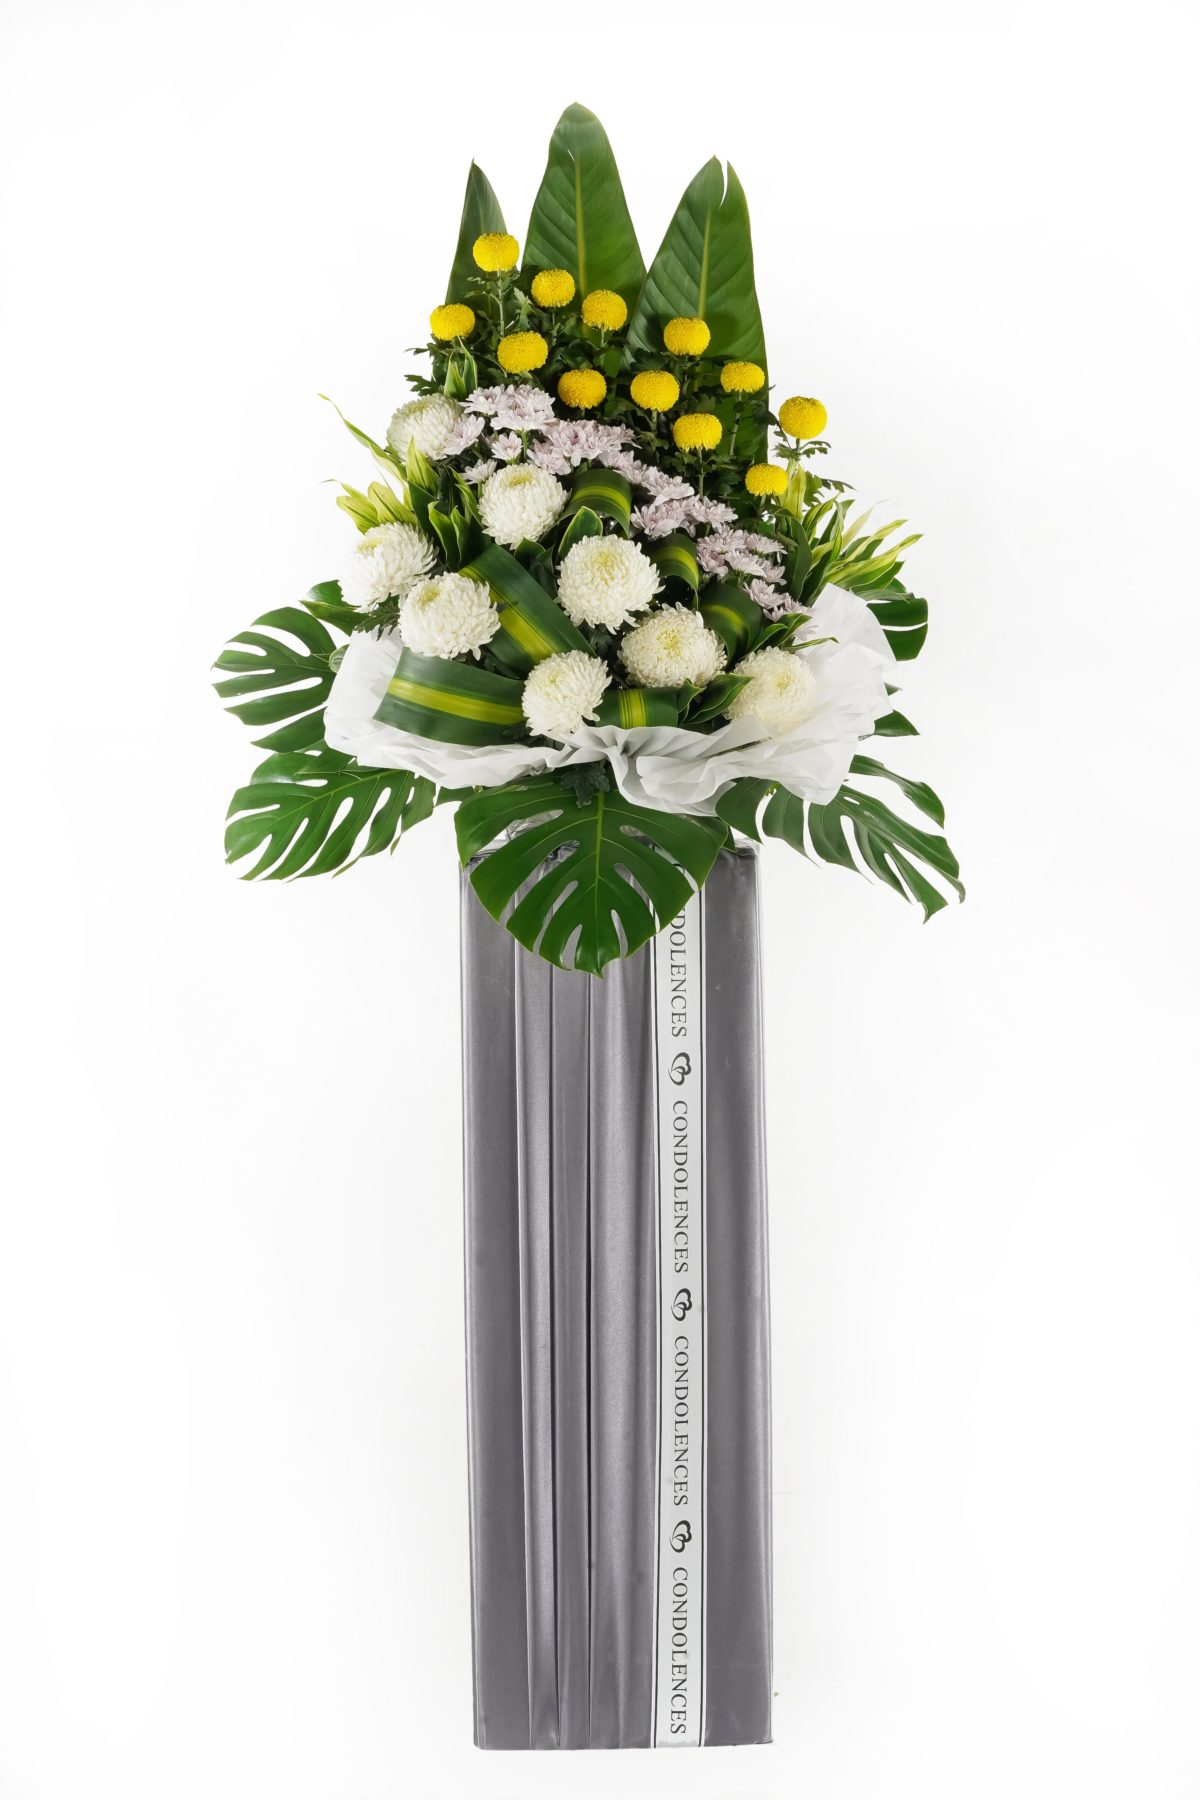 Silent Moment Funeral Flower Stand and Condolence Flowers in Malaysia